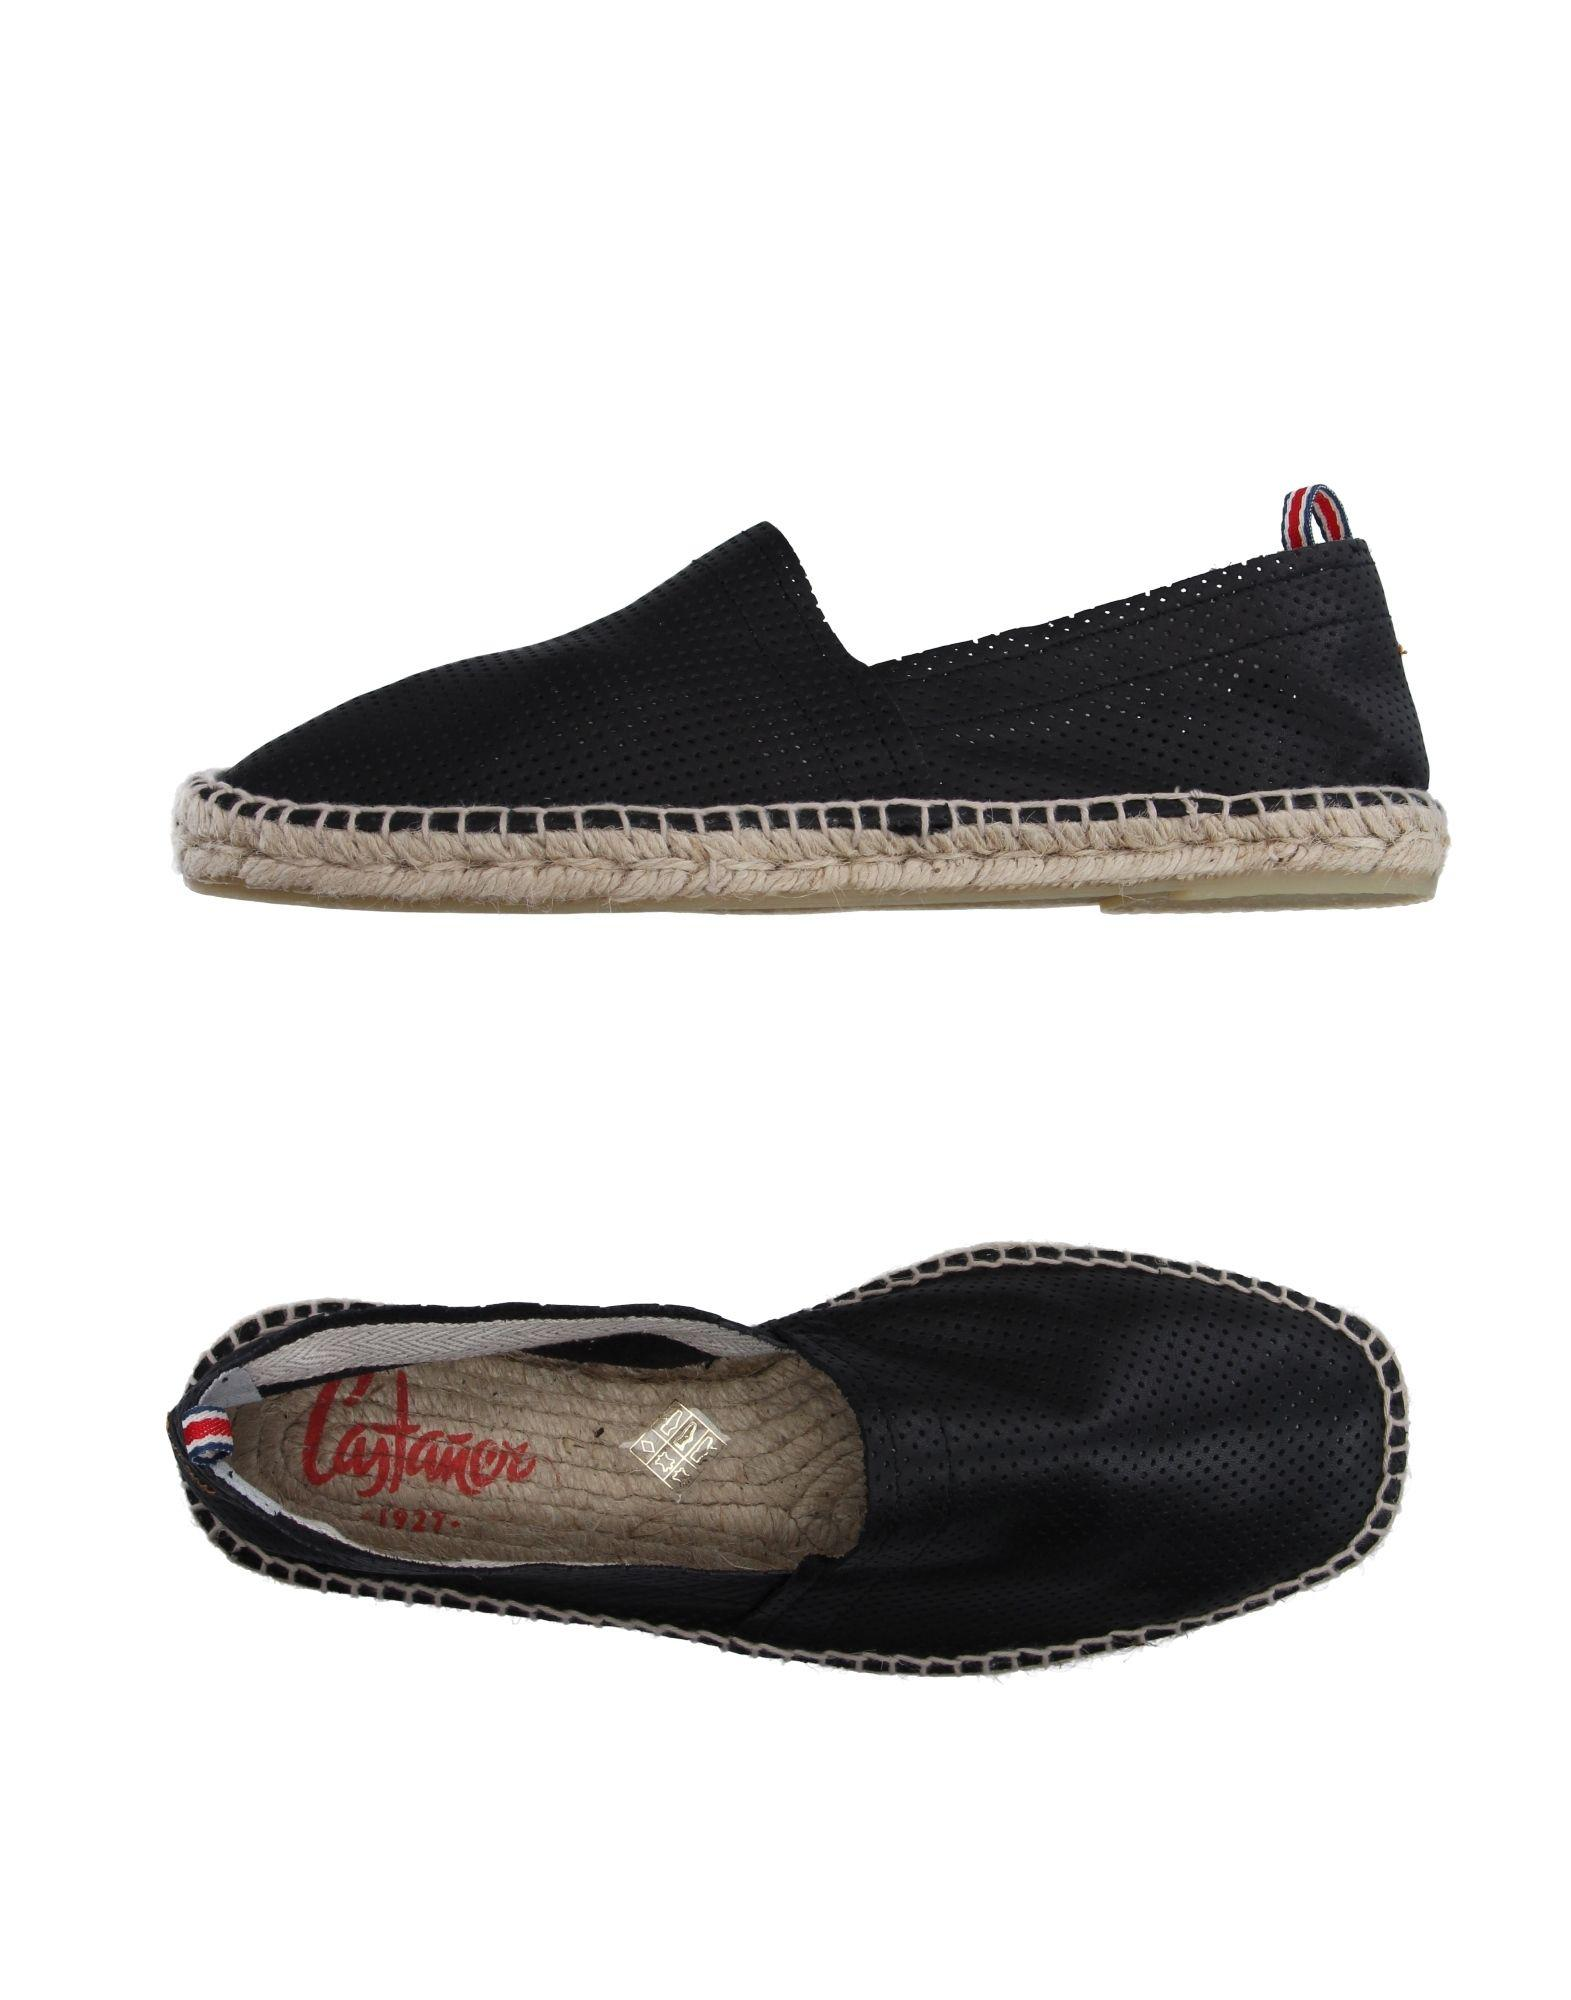 % Authentic — Handcrafted in Spain. Get your classic designer Spanish men's espadrilles that are handcrafted in Spain. Discover your favorite espadrilles men shoes in canvas and disborunmaba.ga a tree with every purchase and enjoy fast FREE SHIPPING & RETURNS on all online orders.